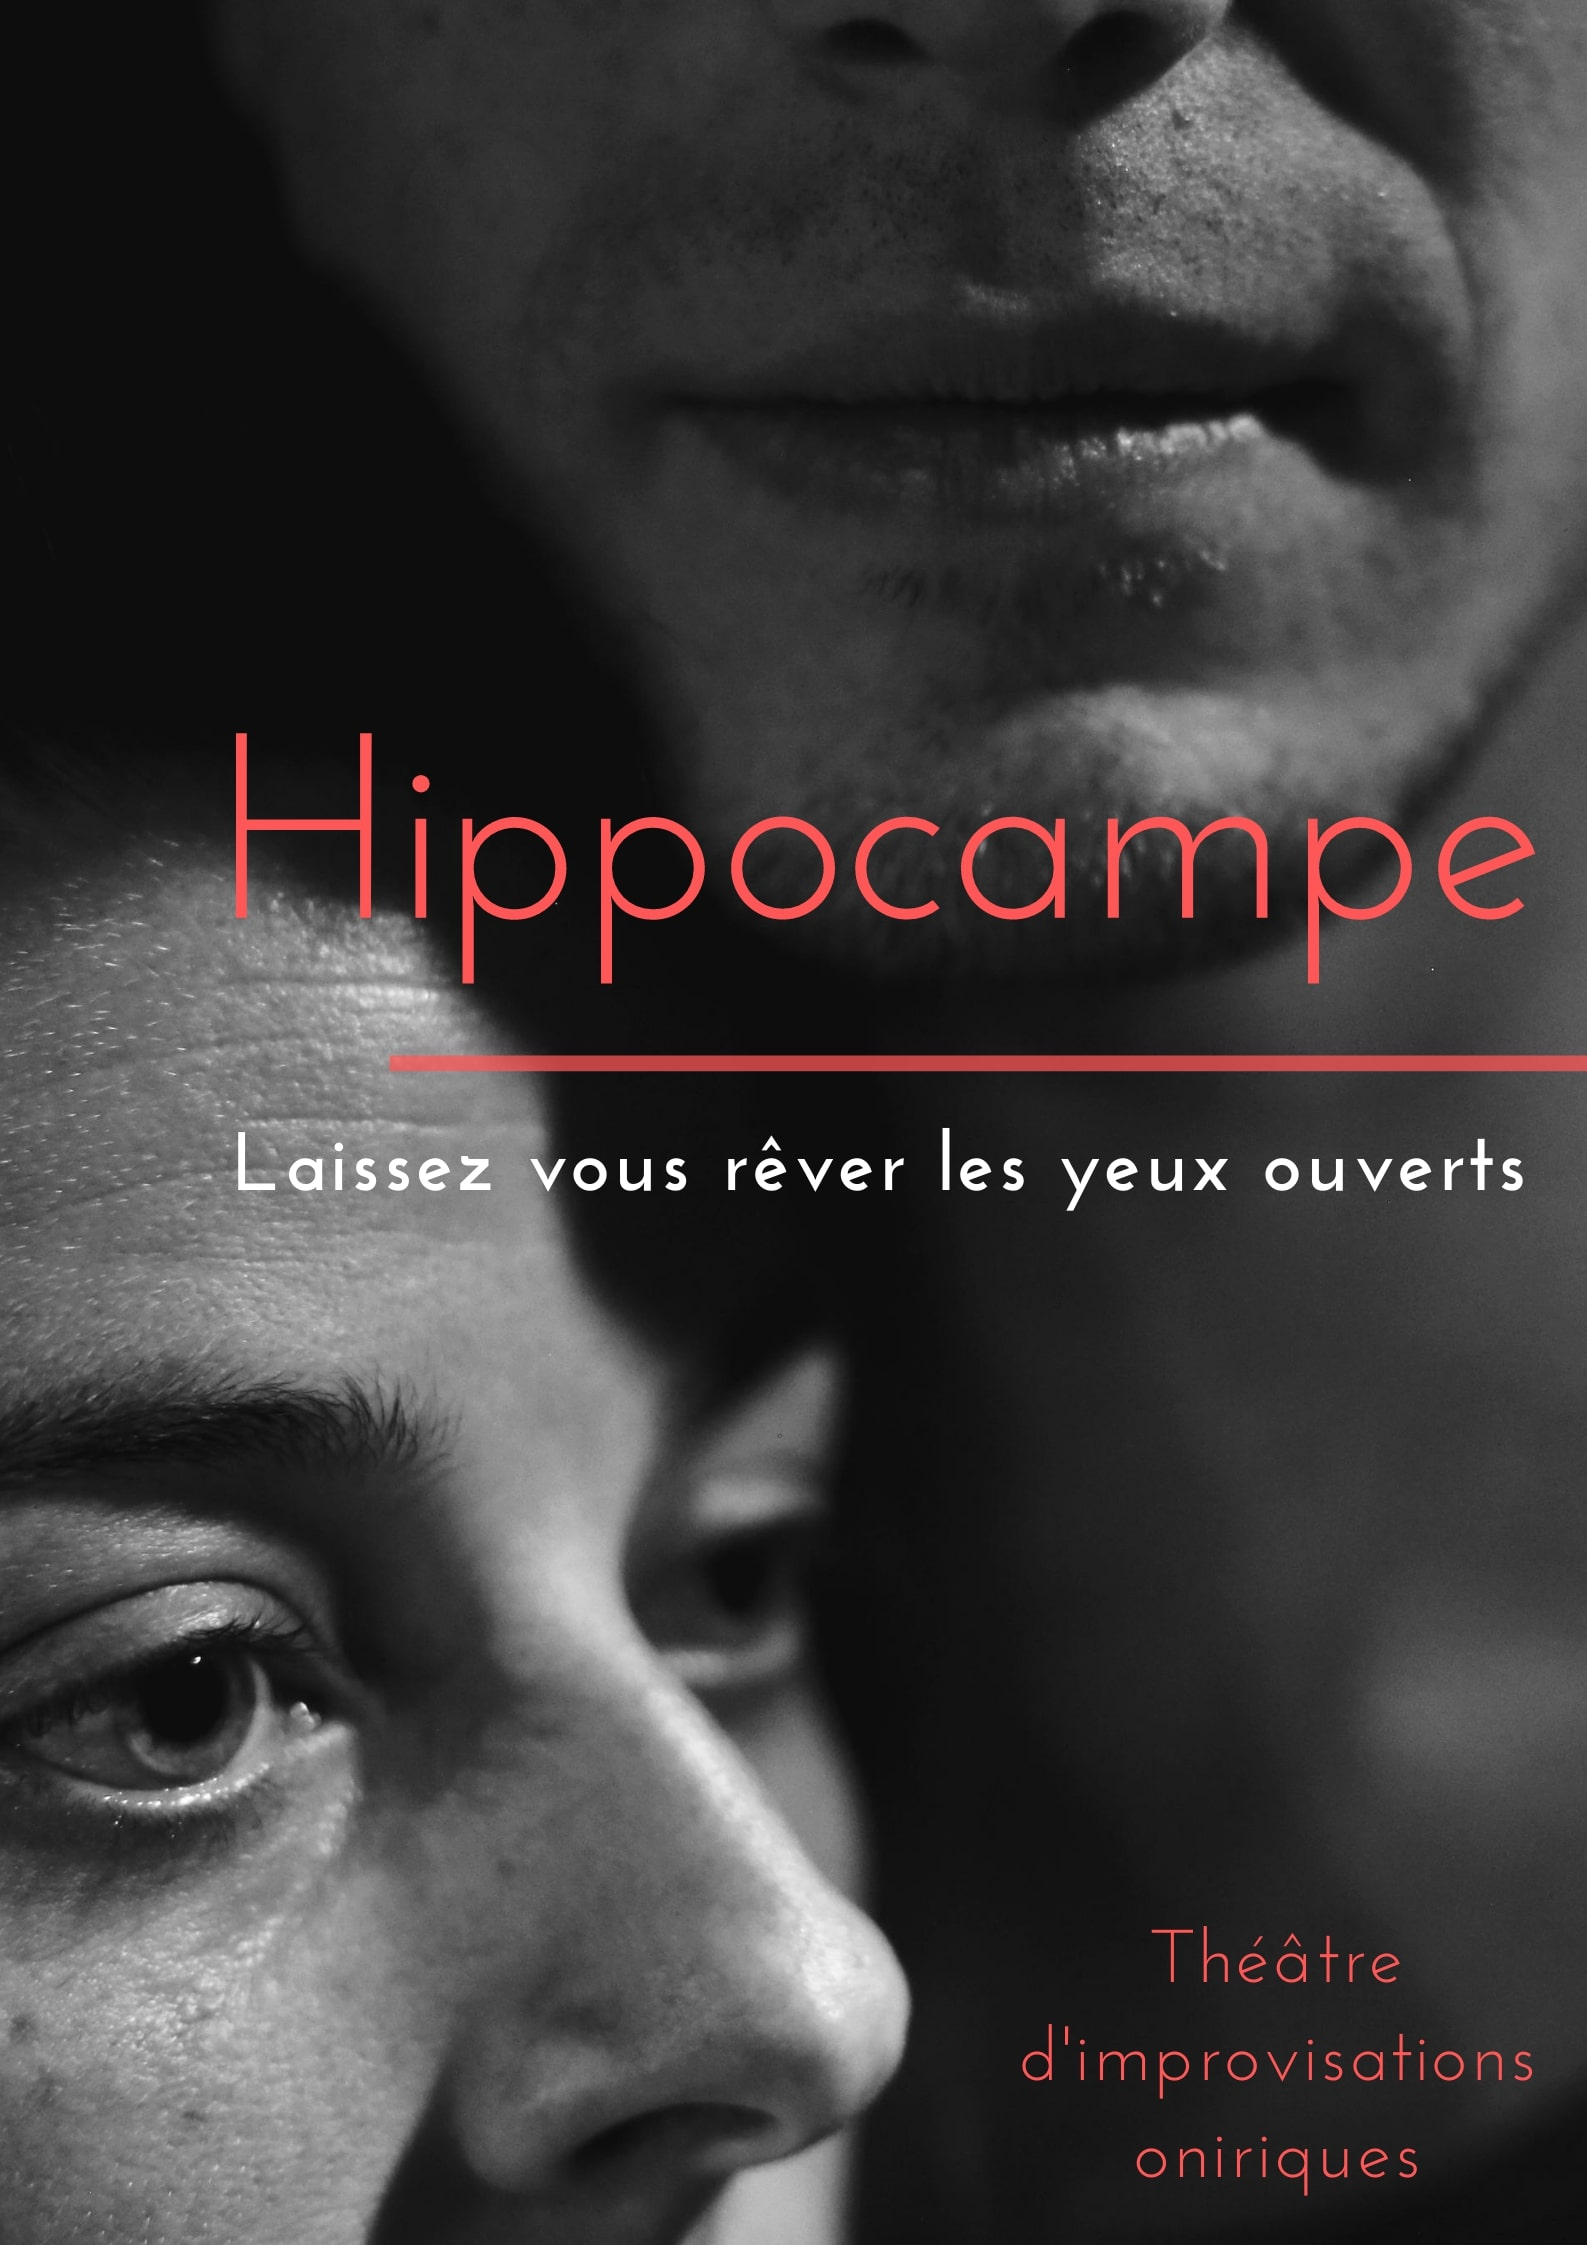 Affiche Spectacle Hippocampe